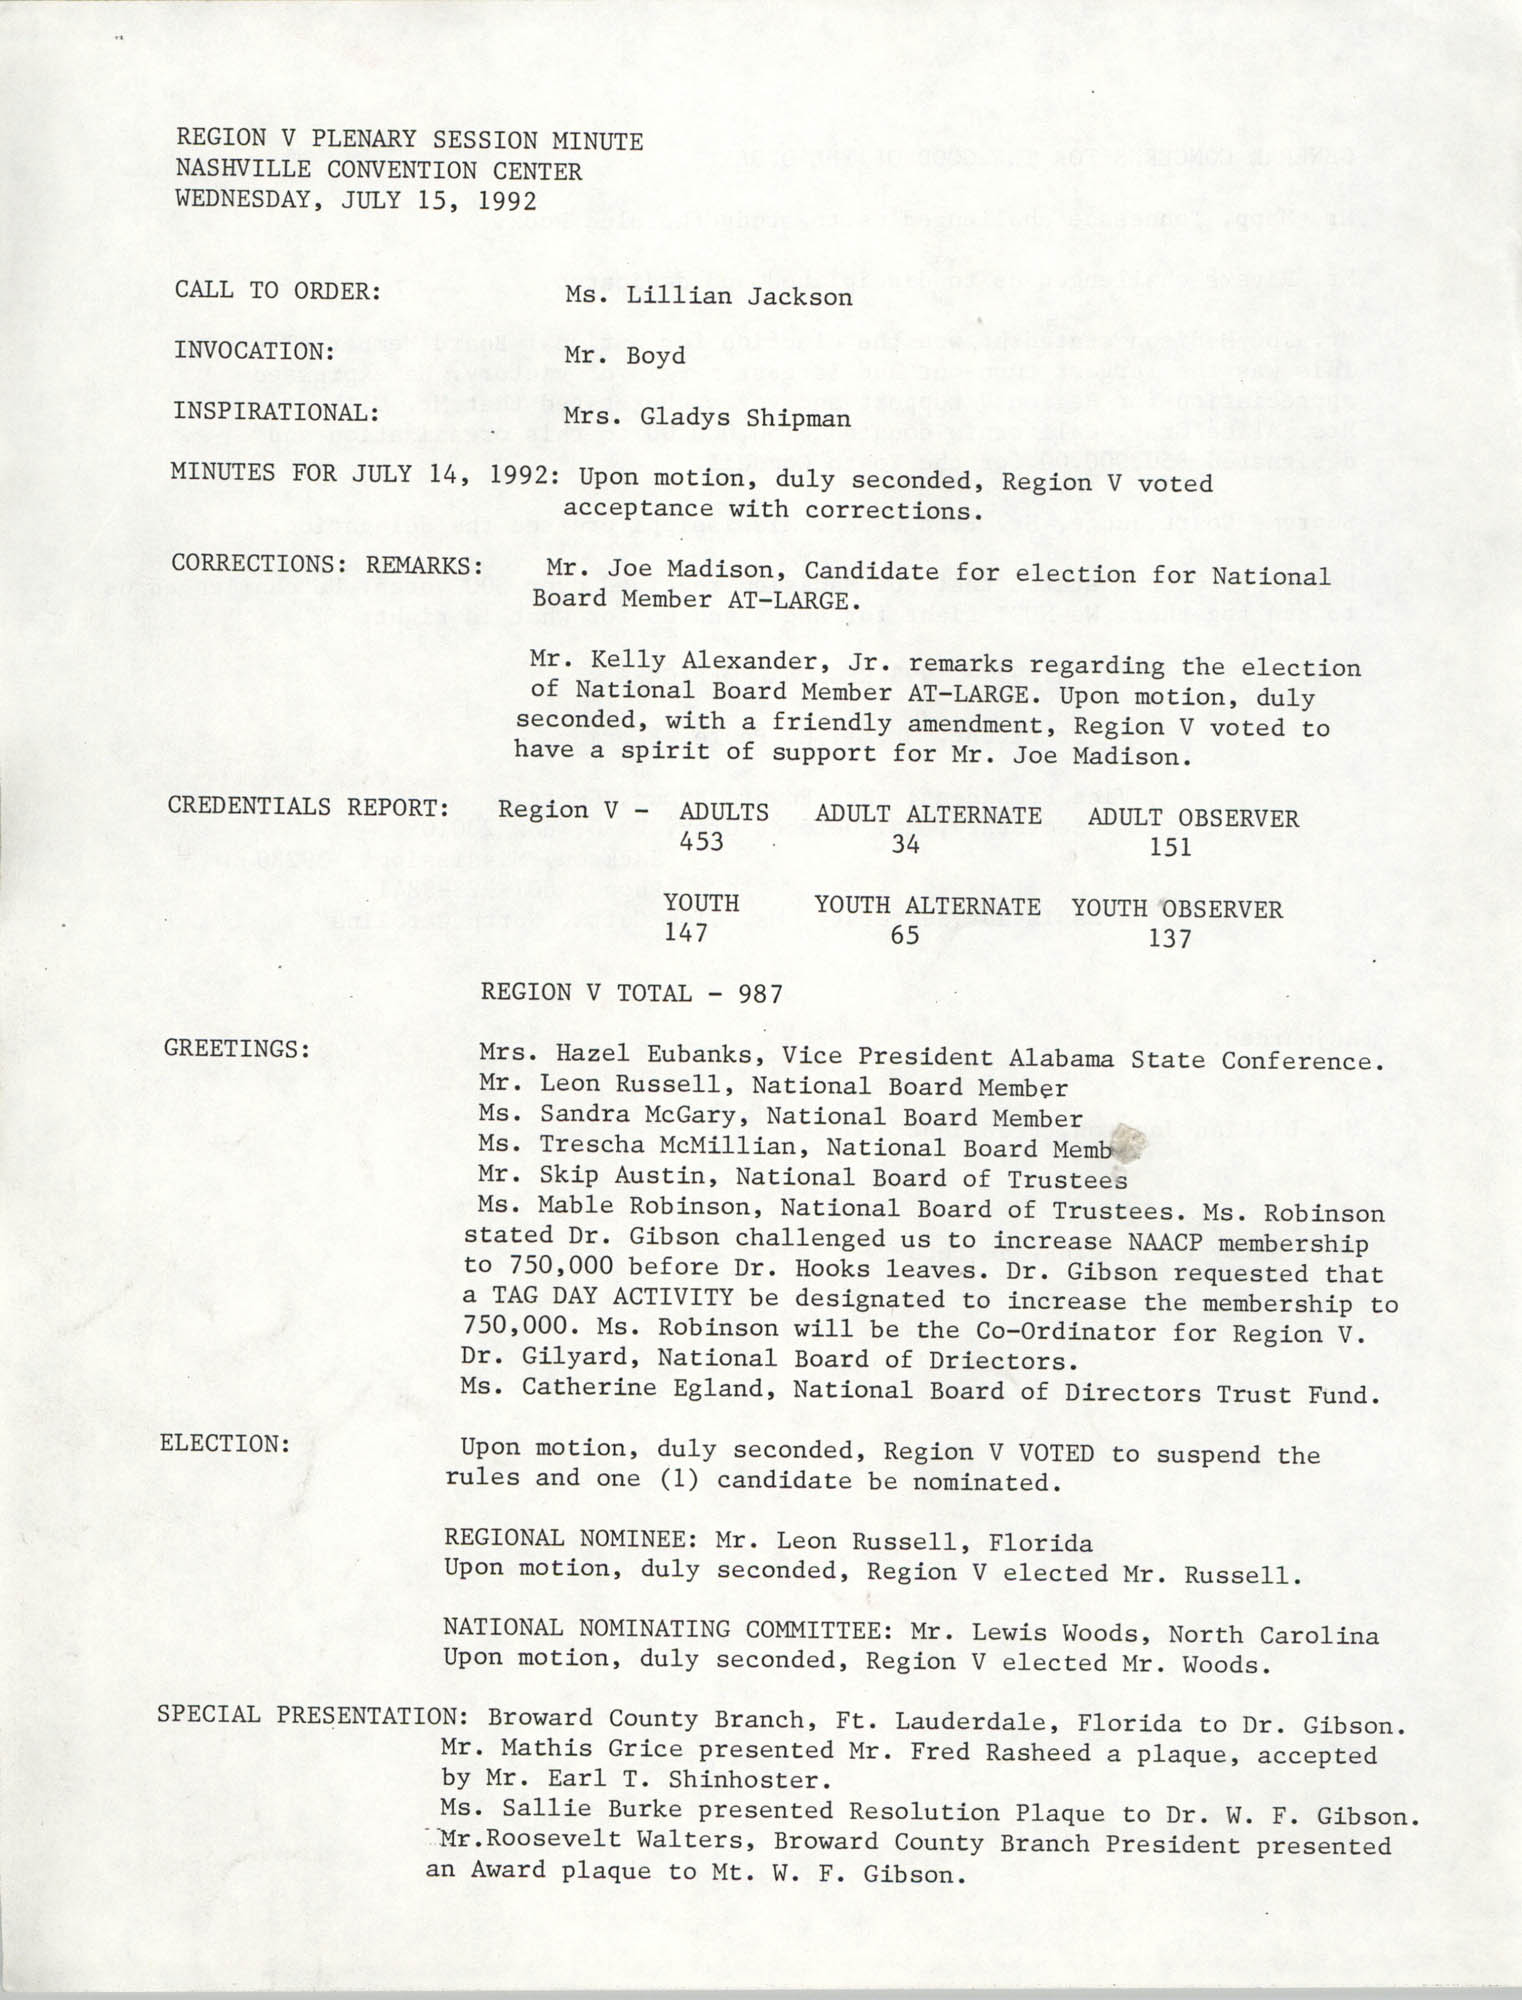 Region V Plenary Session Minutes, July 15, 1992